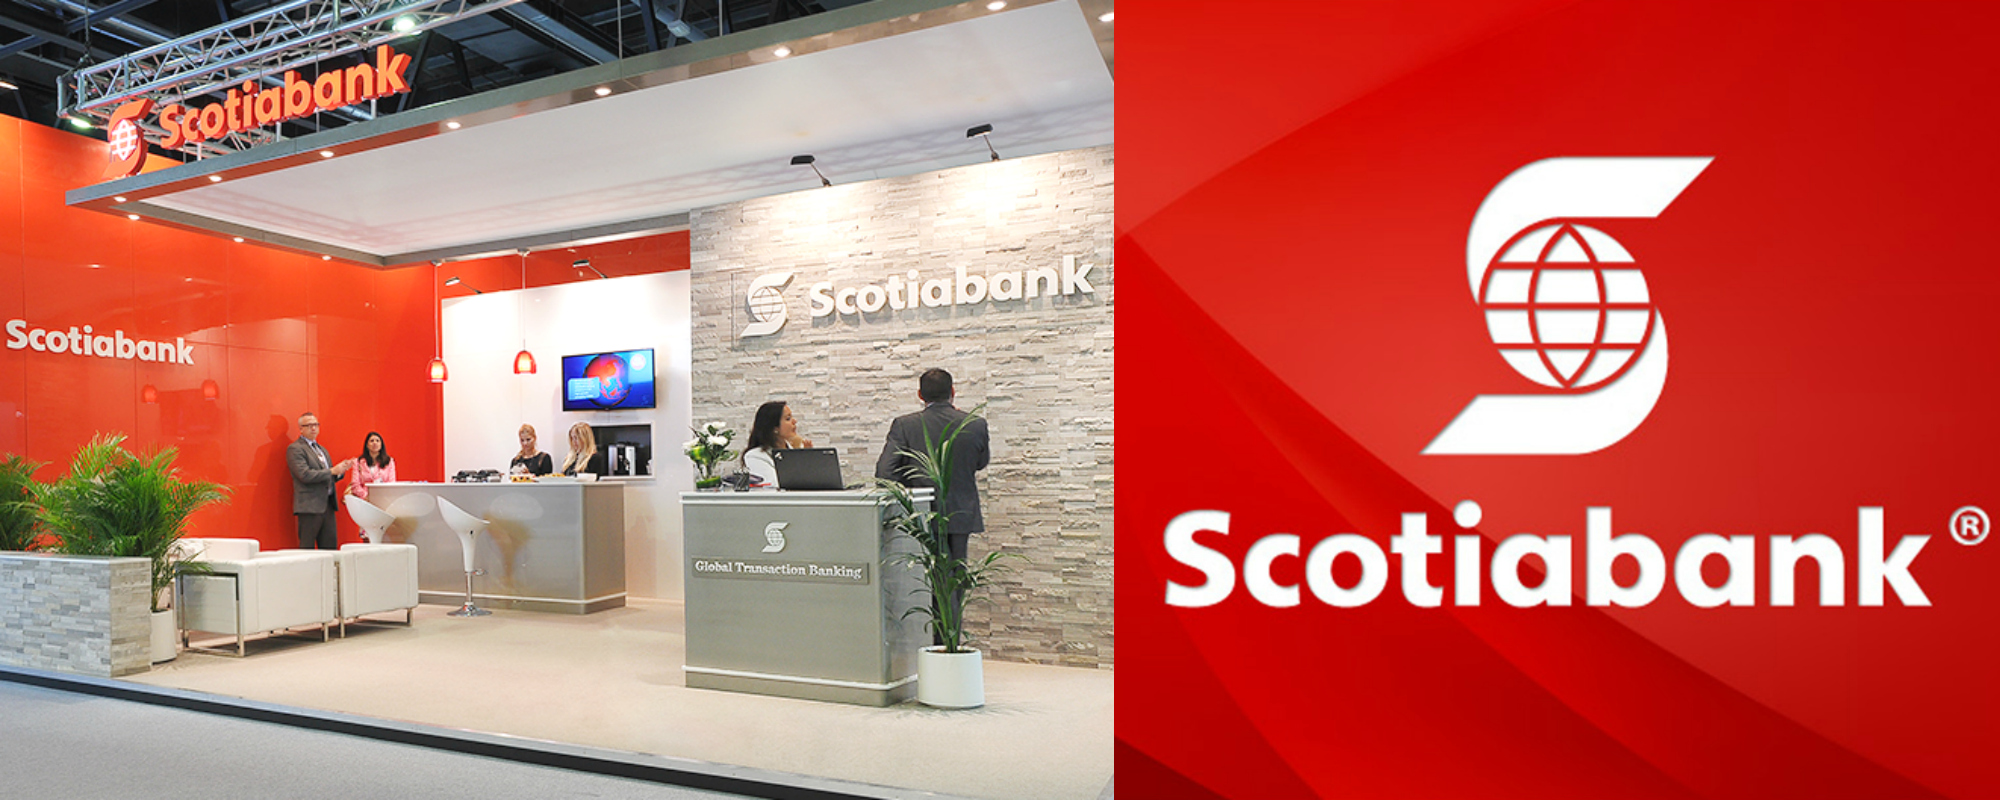 scotia bank banner Most Powerful M&A Firms in the world best upslide